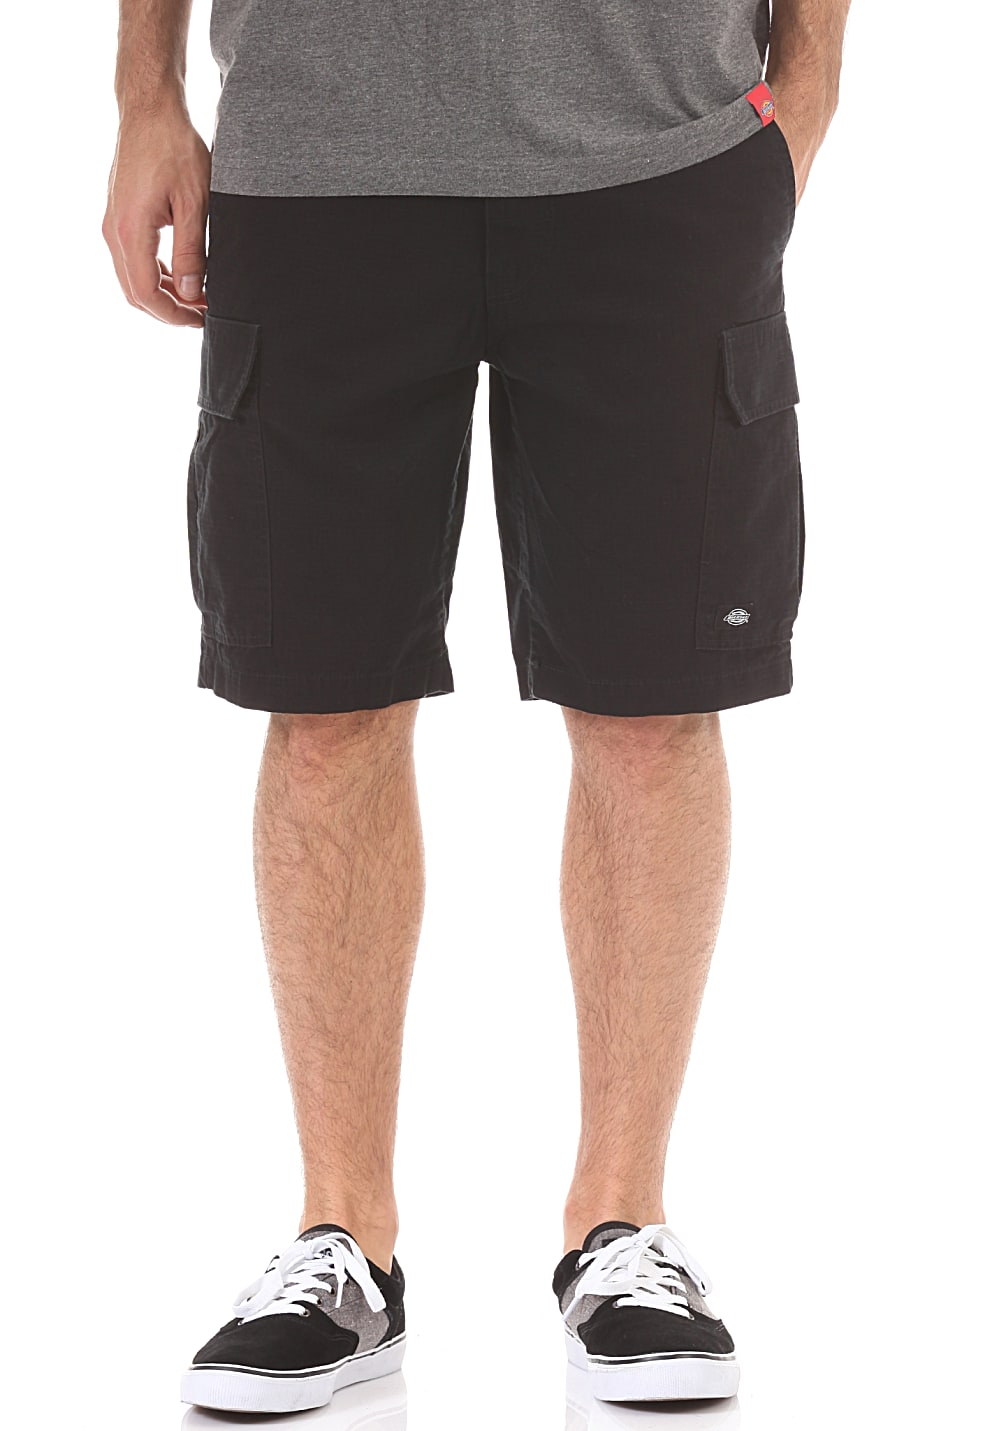 dickies new york cargo shorts f r herren schwarz planet sports. Black Bedroom Furniture Sets. Home Design Ideas